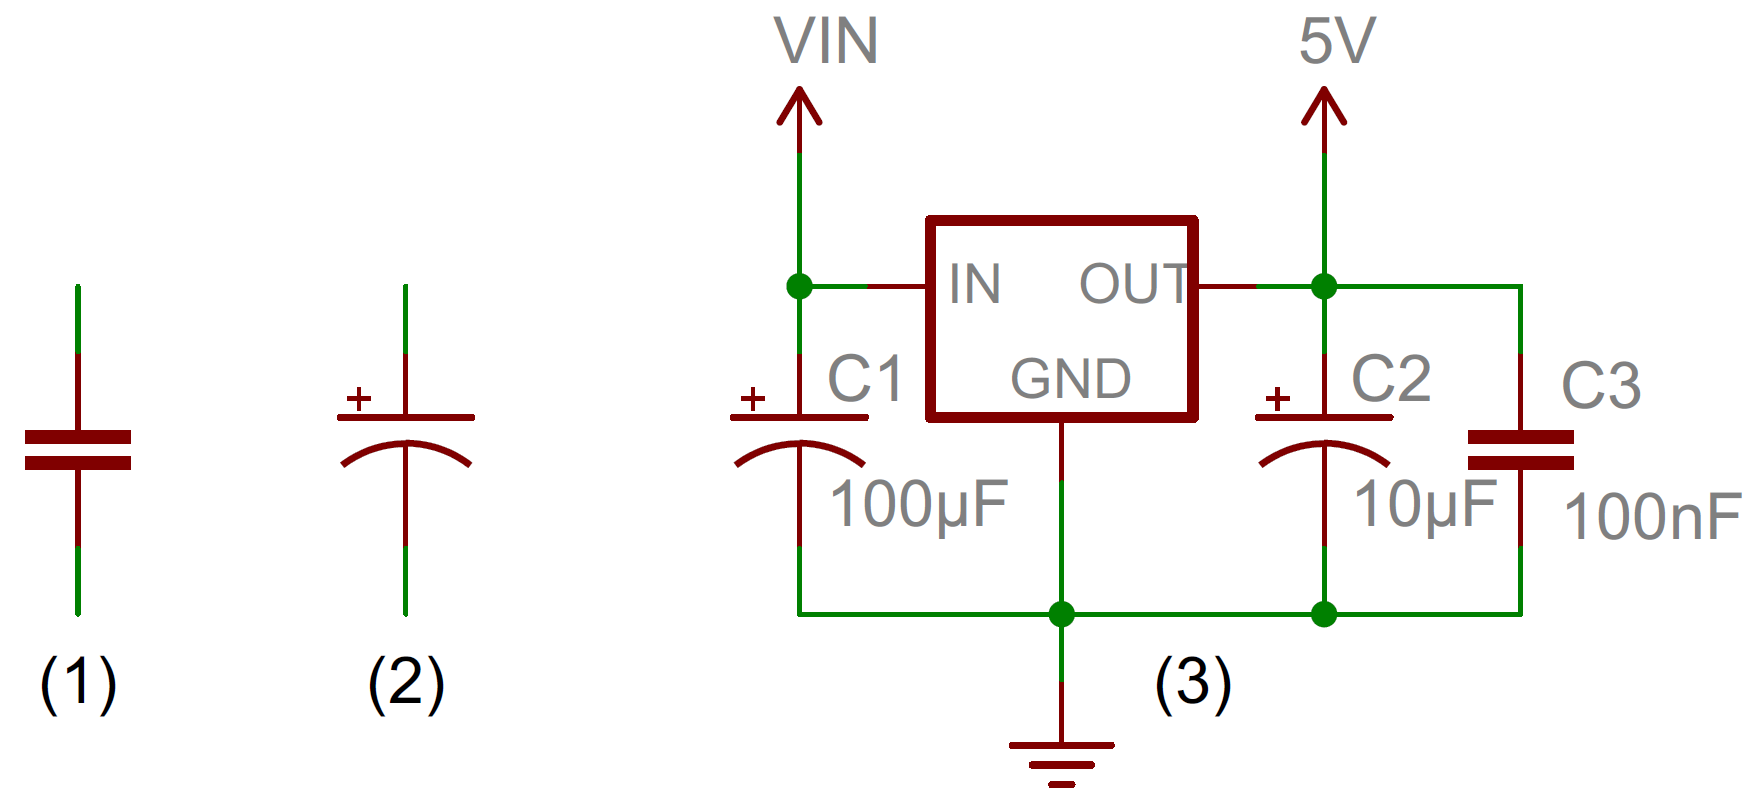 Capacitors Wiring A Cap Diagram Capacitor Circuit Symbols